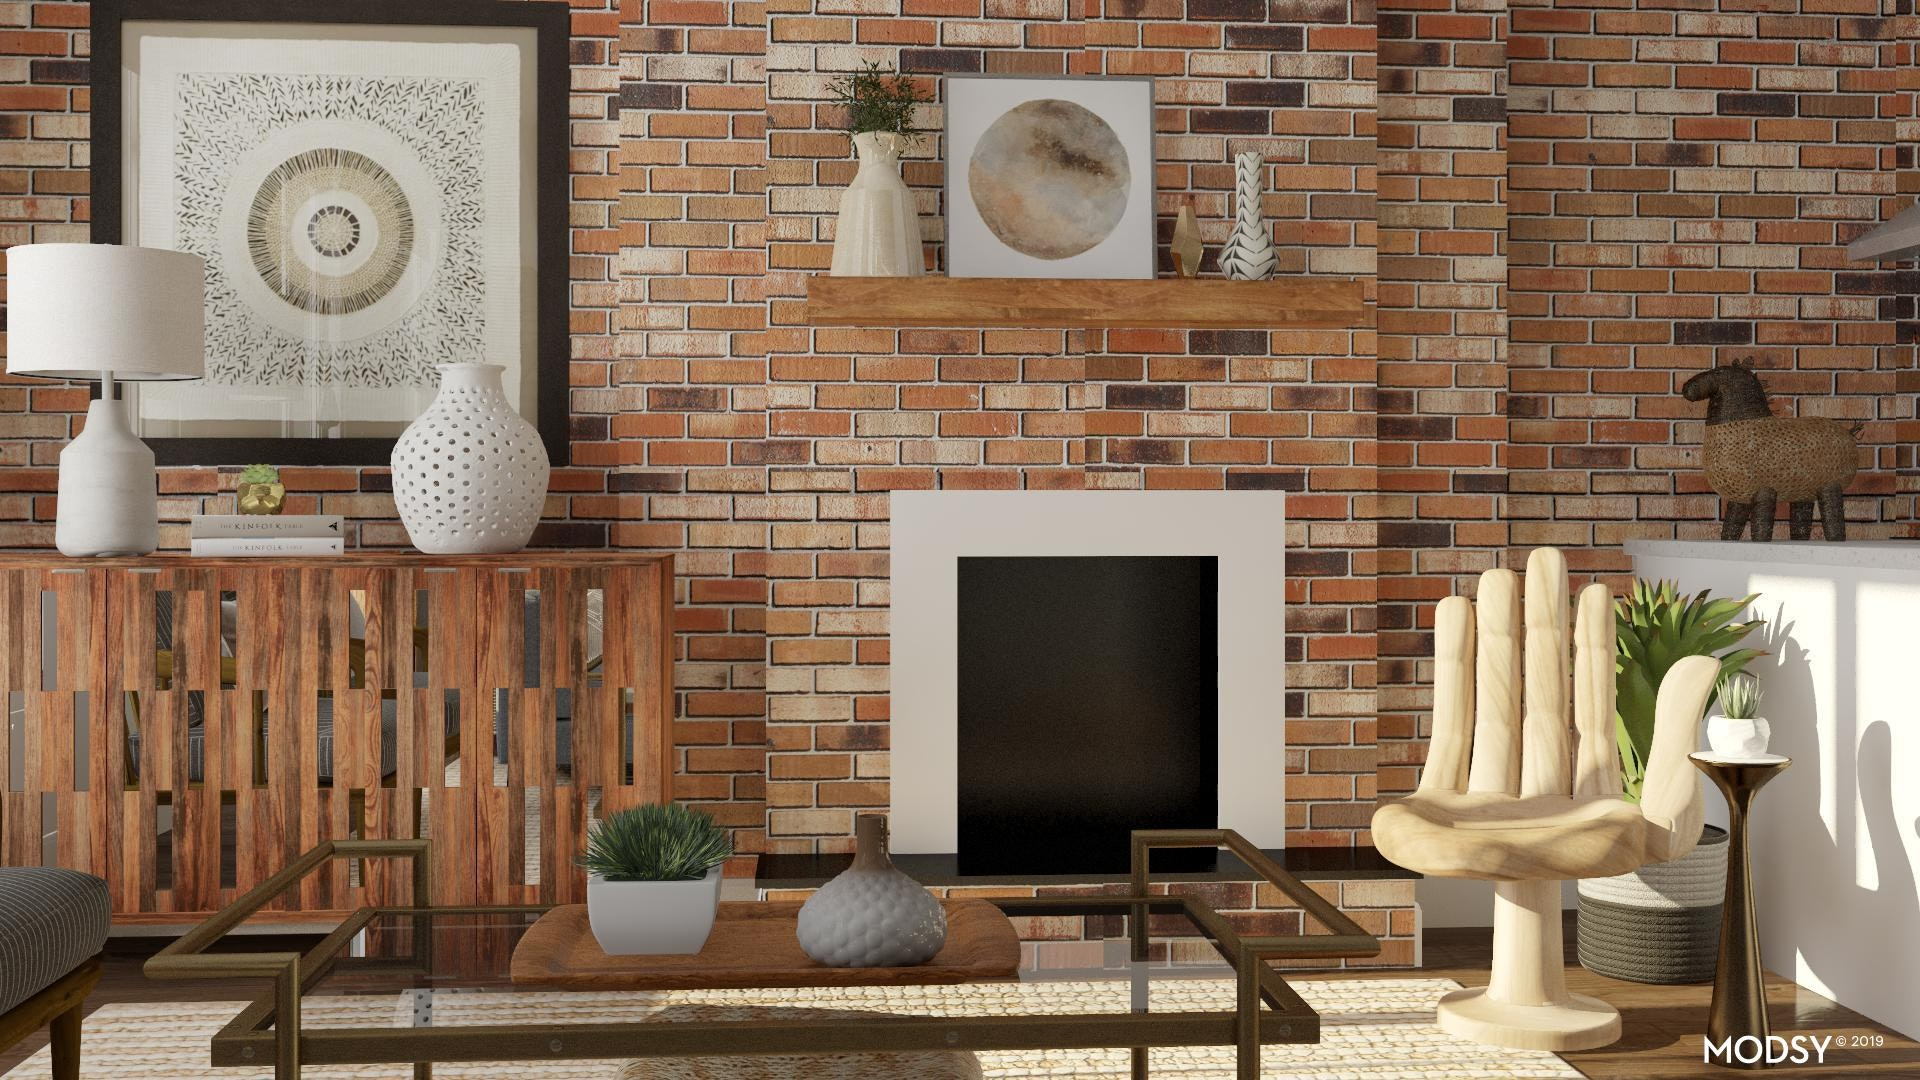 Eclectic Fireplace Seat Eclectic Style Living Room Design